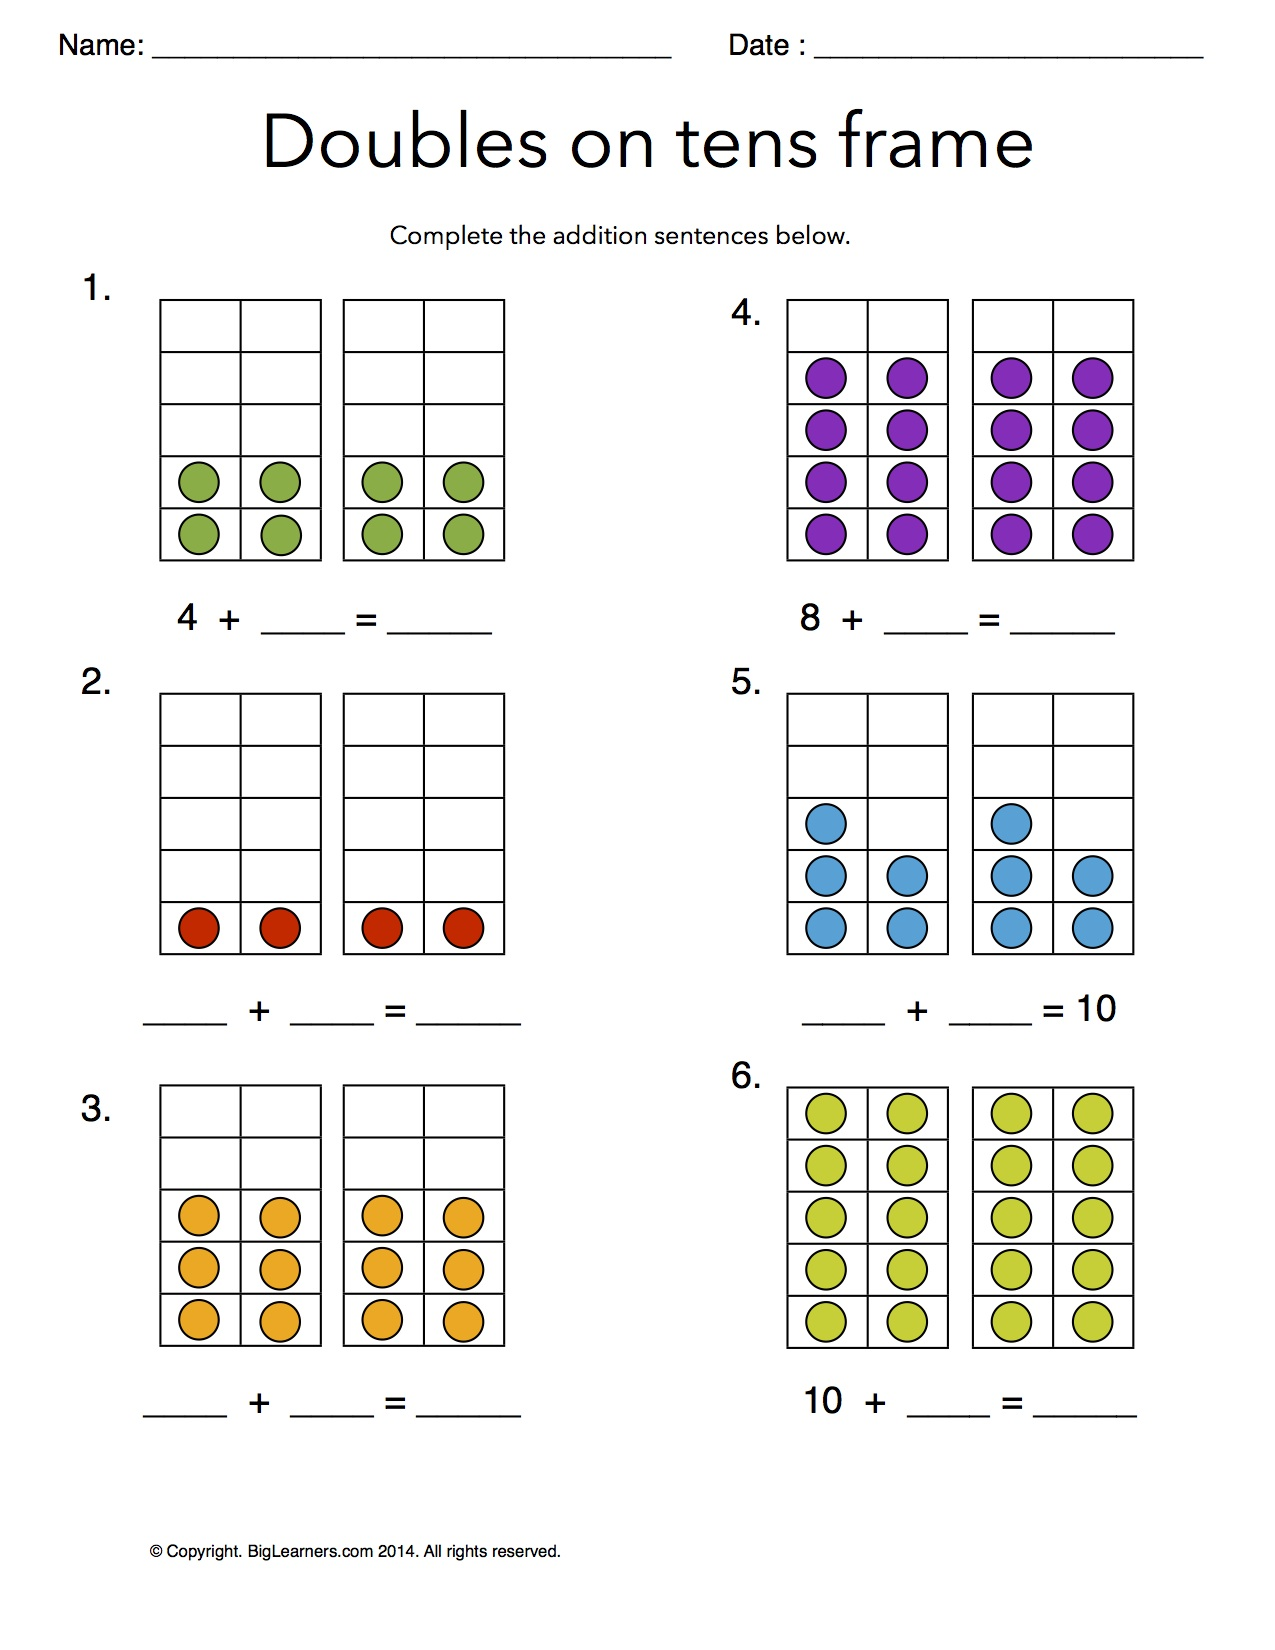 Grade 1 Free Common Core Math Worksheets – Tens Frames Worksheets